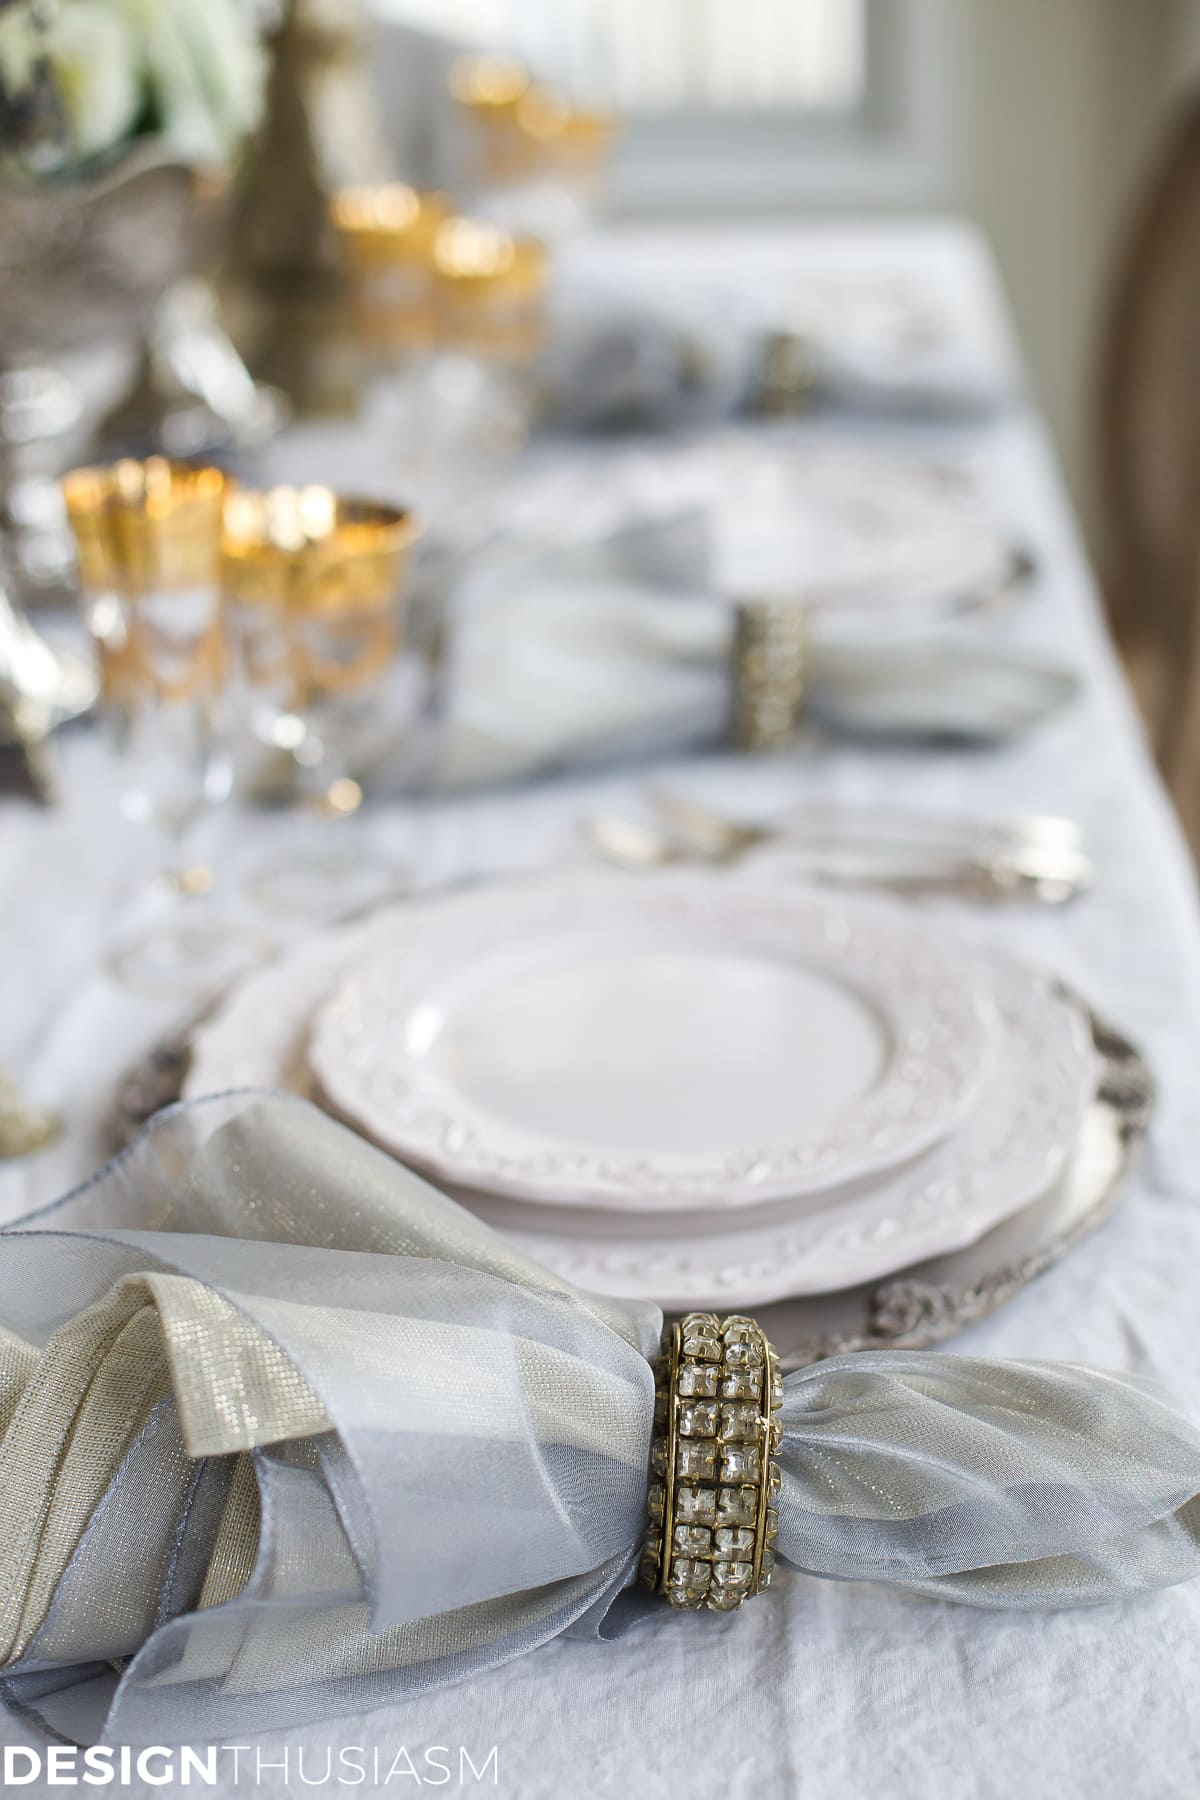 new year 39 s day brunch table setting mixing gold and silver. Black Bedroom Furniture Sets. Home Design Ideas